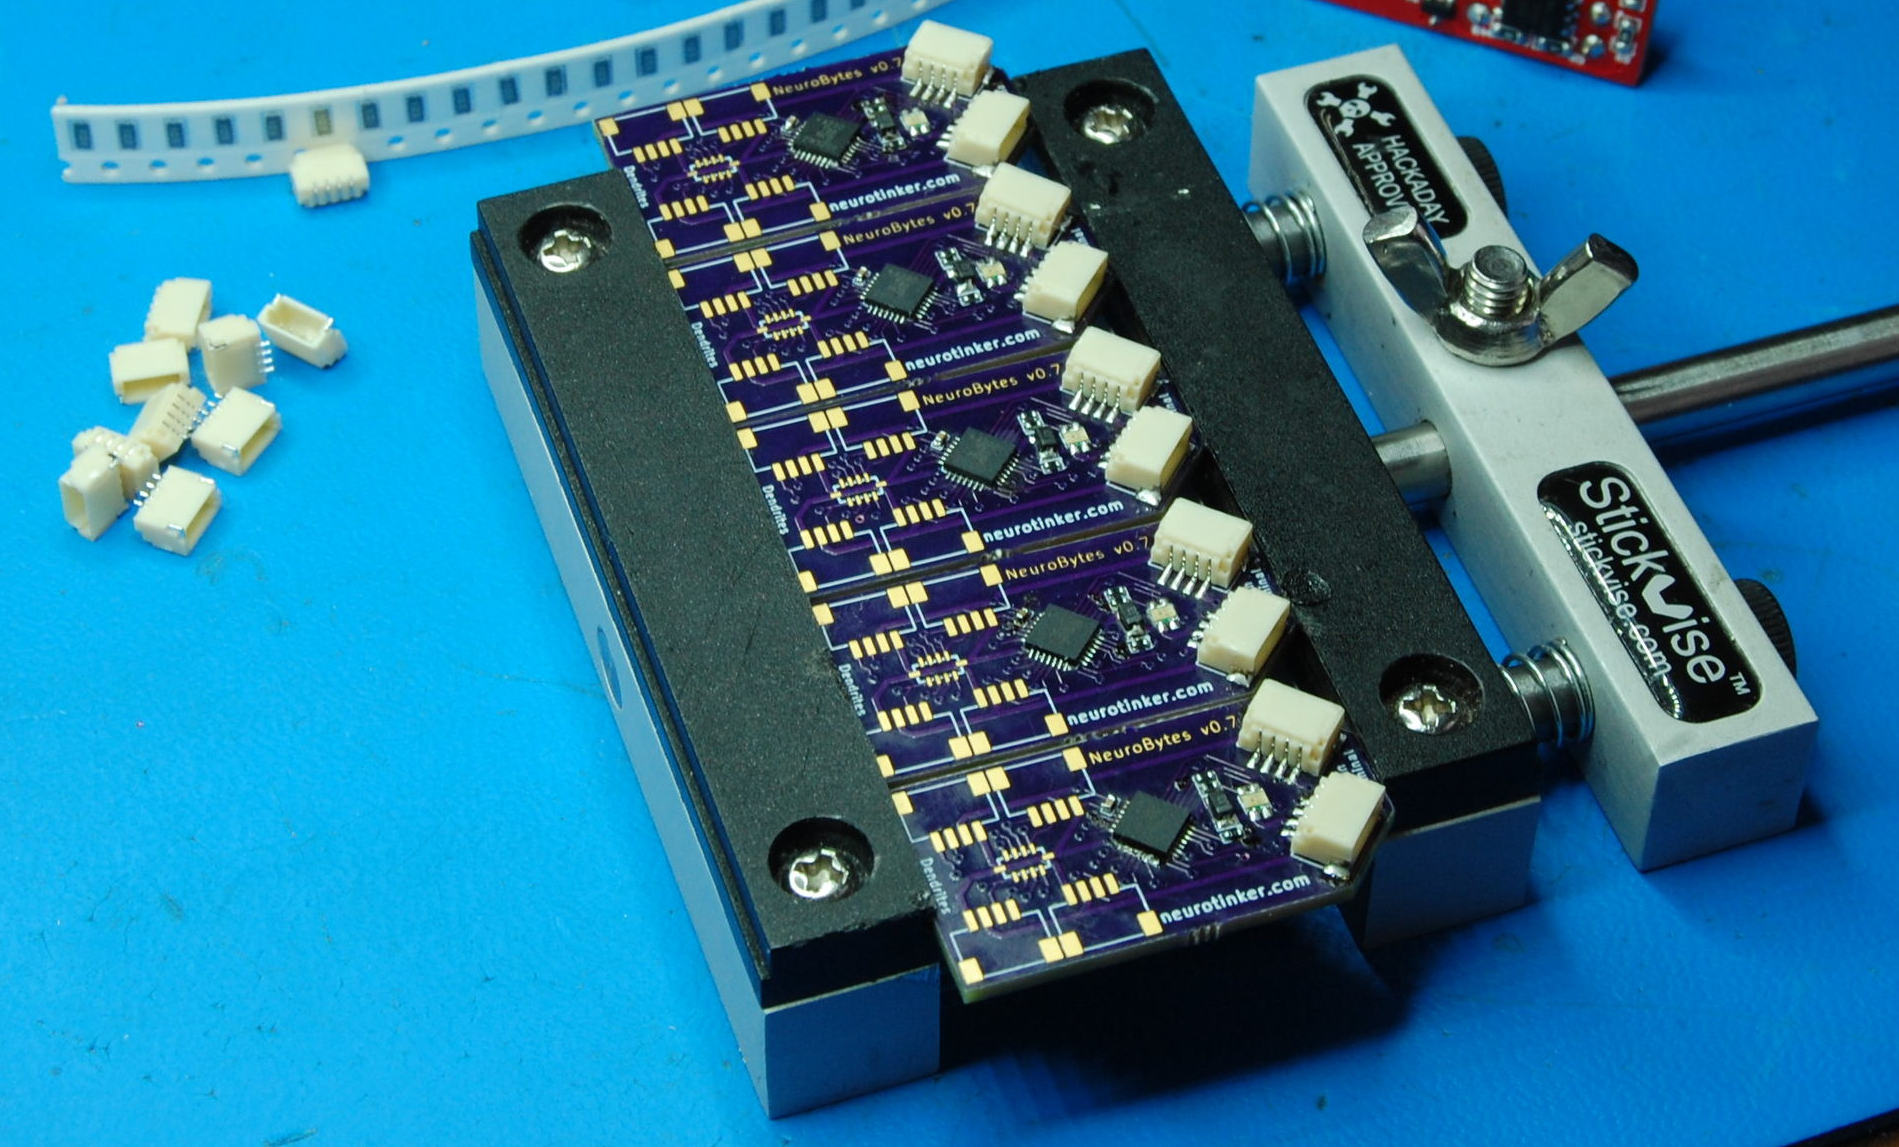 Five v0.7 prototypes midway through soldering, showing the QFN-28 ATtiny88 and single RGB LED.